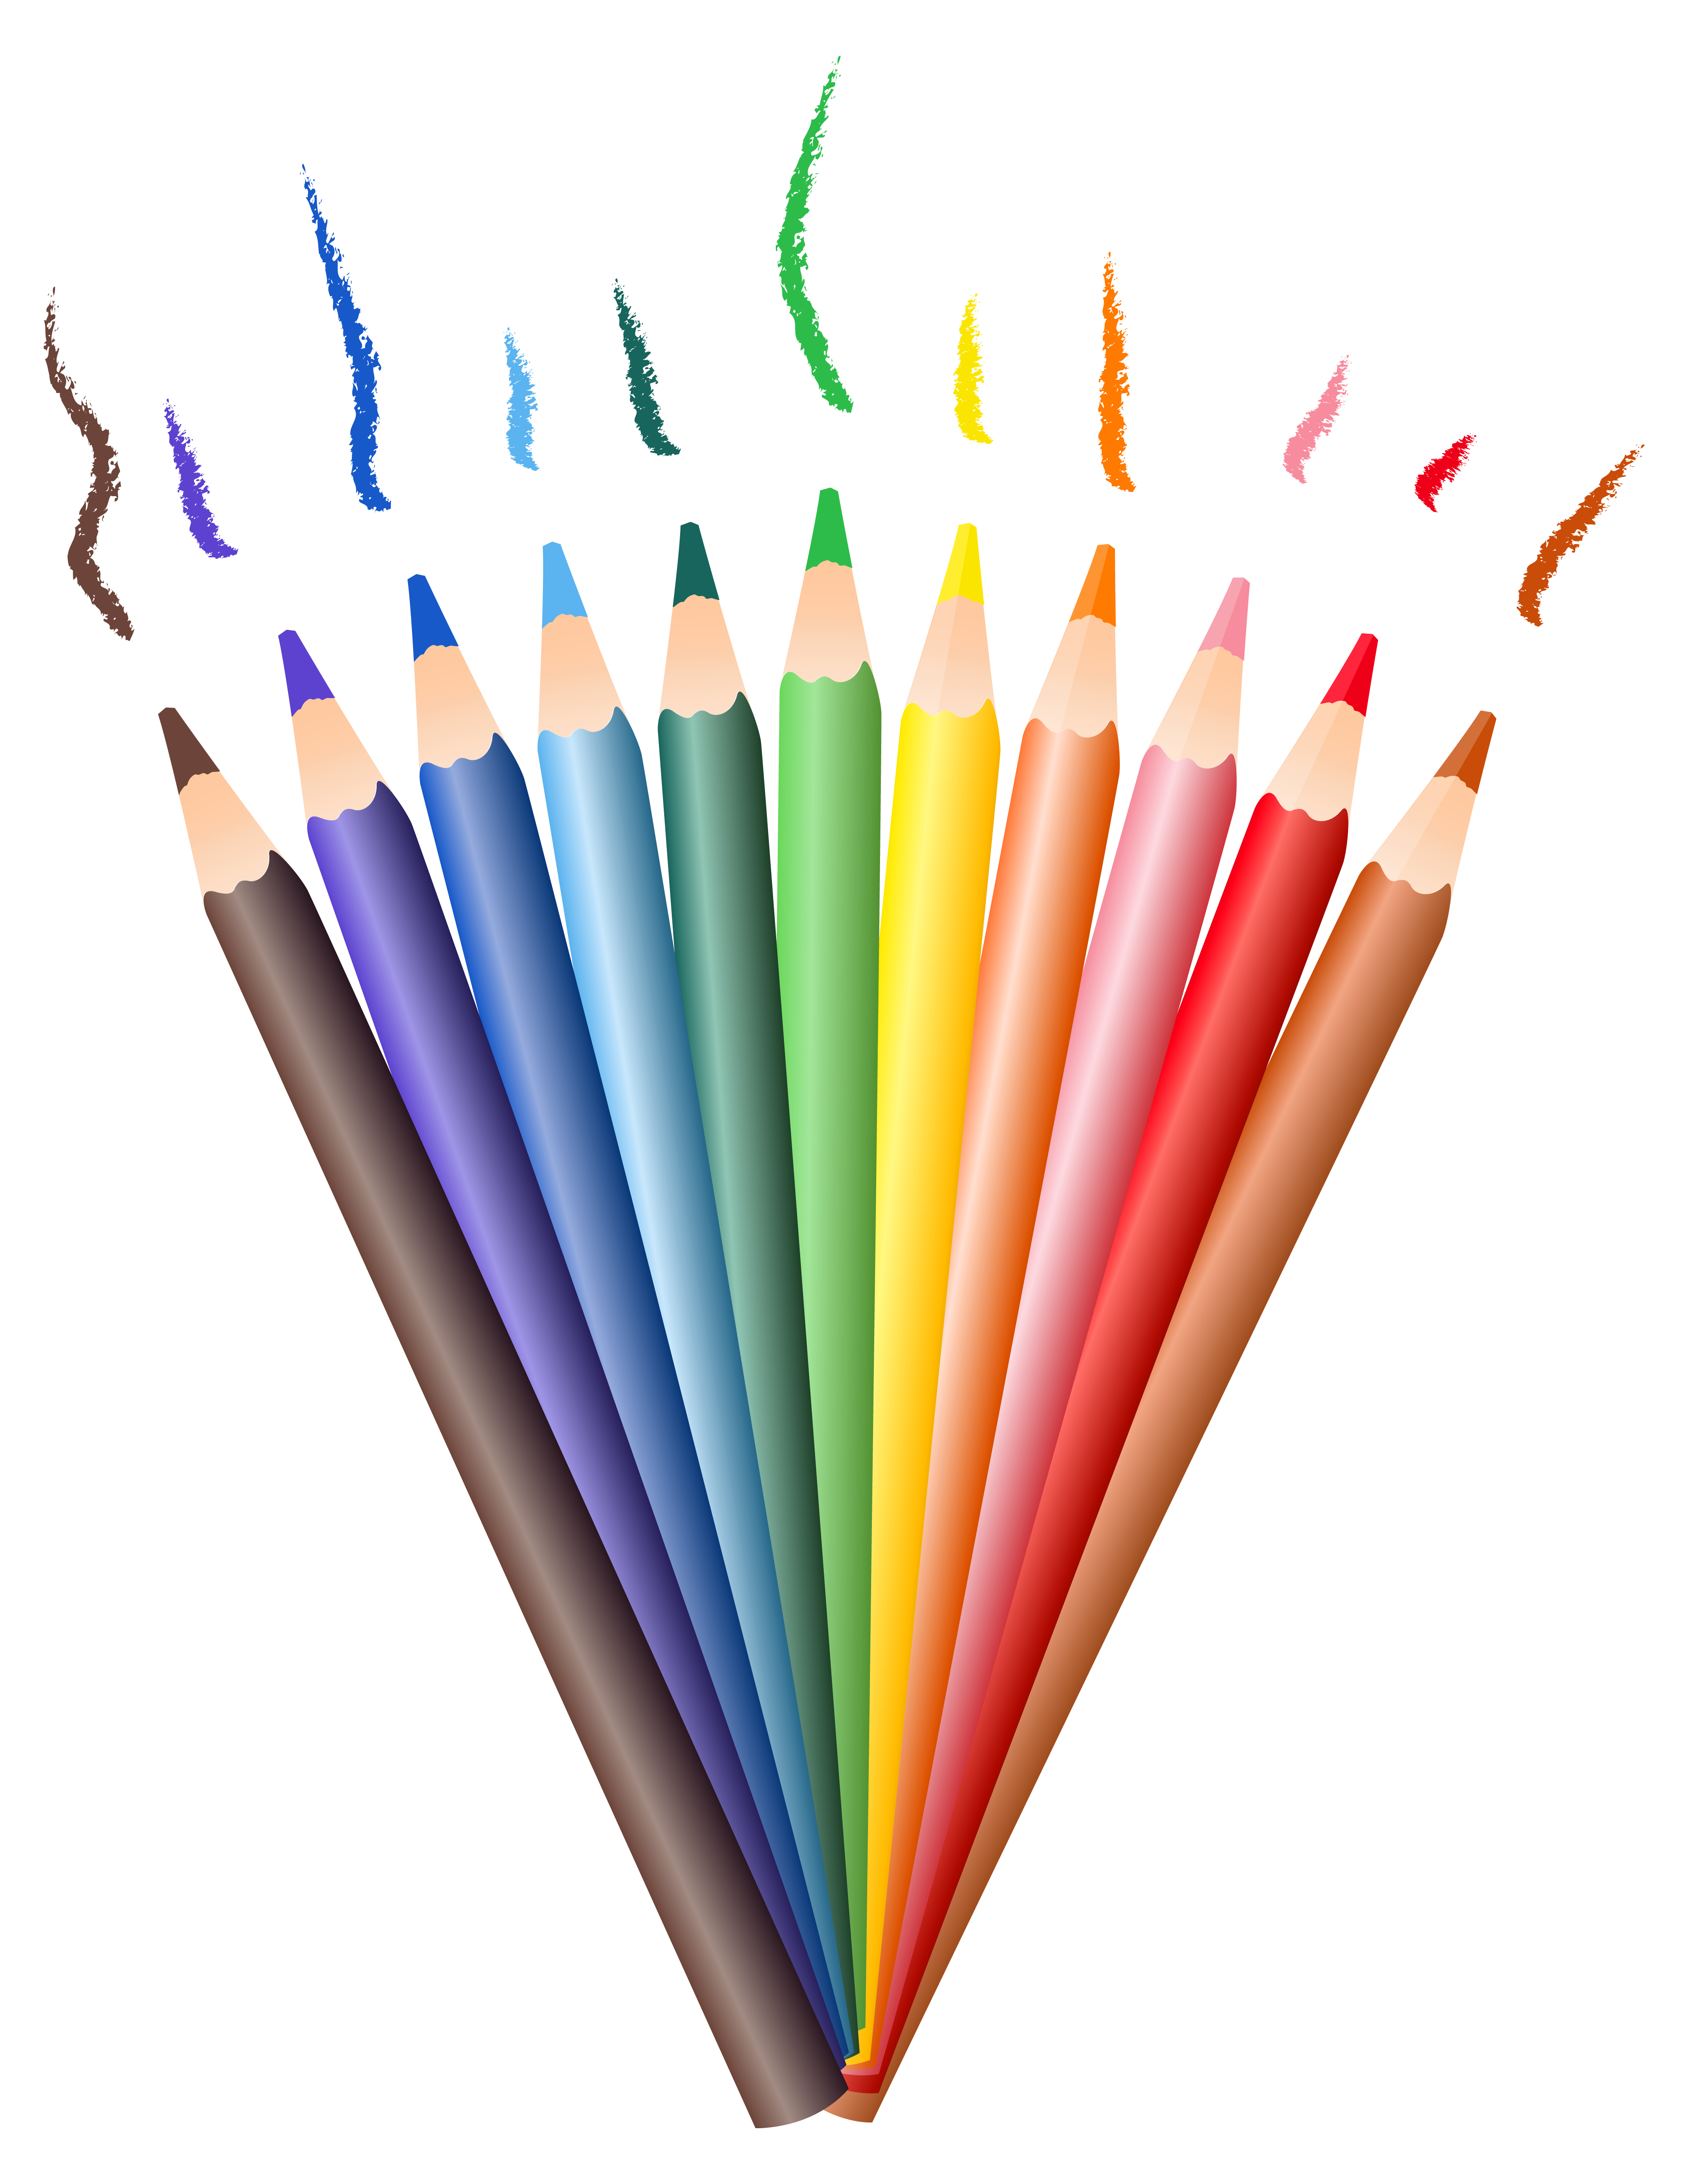 Pencils PNG Clipart Transparent Picture.